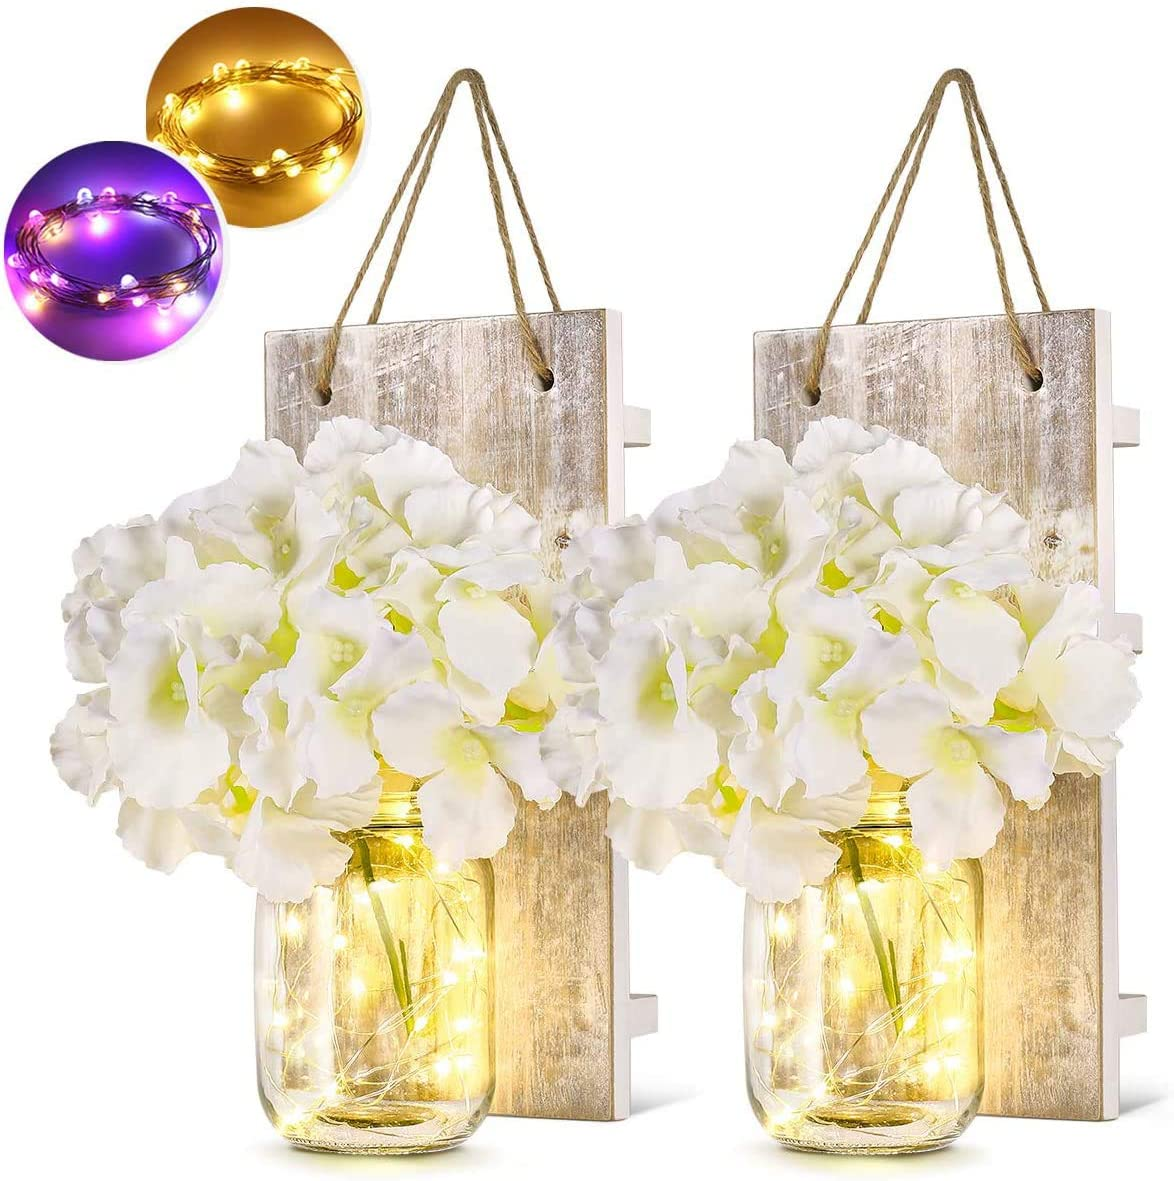 Wall Sconces Mason Jar Hanging Lamp Wall Decor Home Decoration With LED Fairy Lights Flowers Iron Hooks (2 Pack)